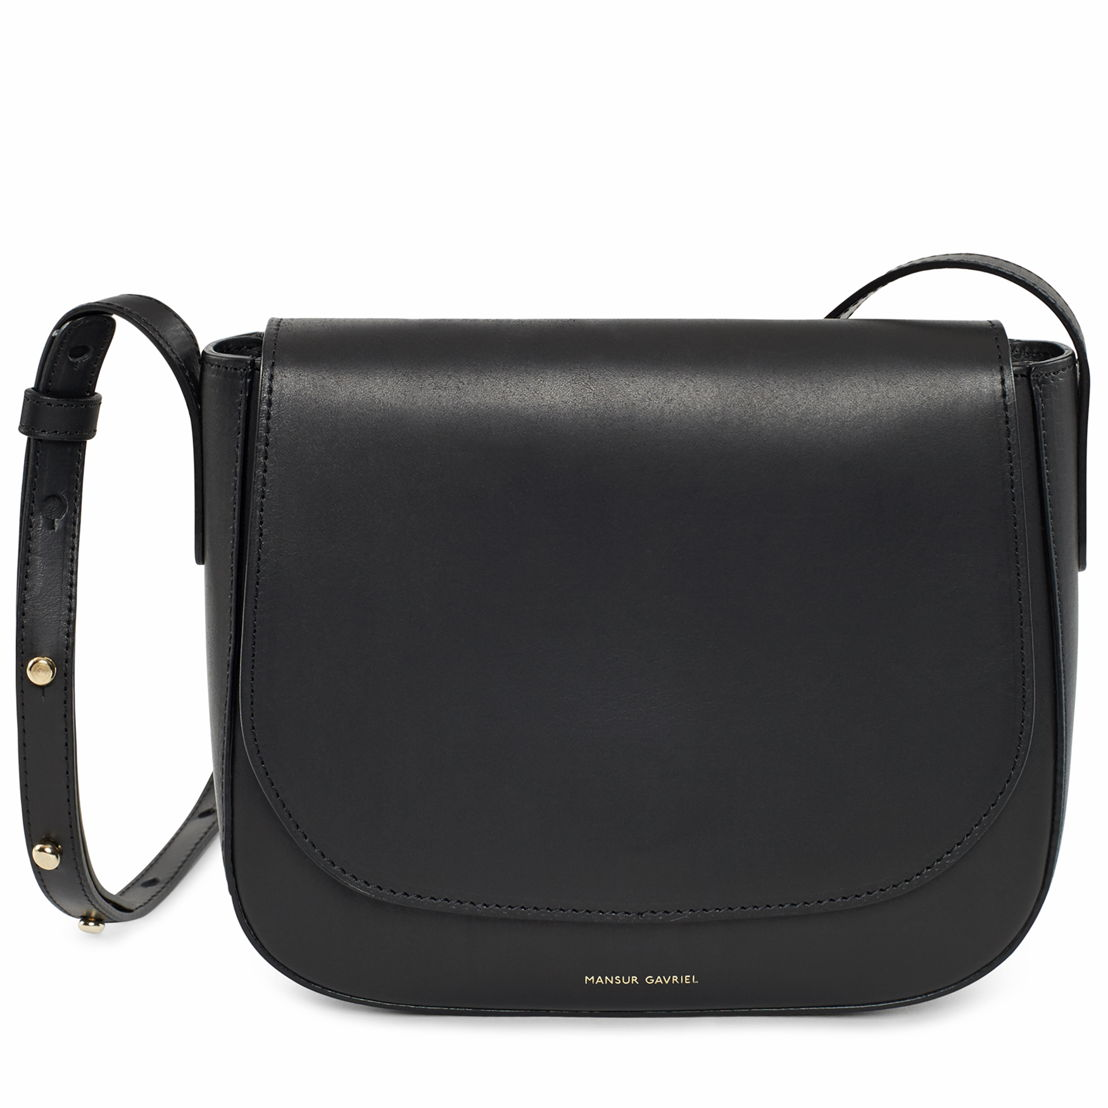 Mansur Gavriel Cross Body Black 515 euro at Graanmarkt 13